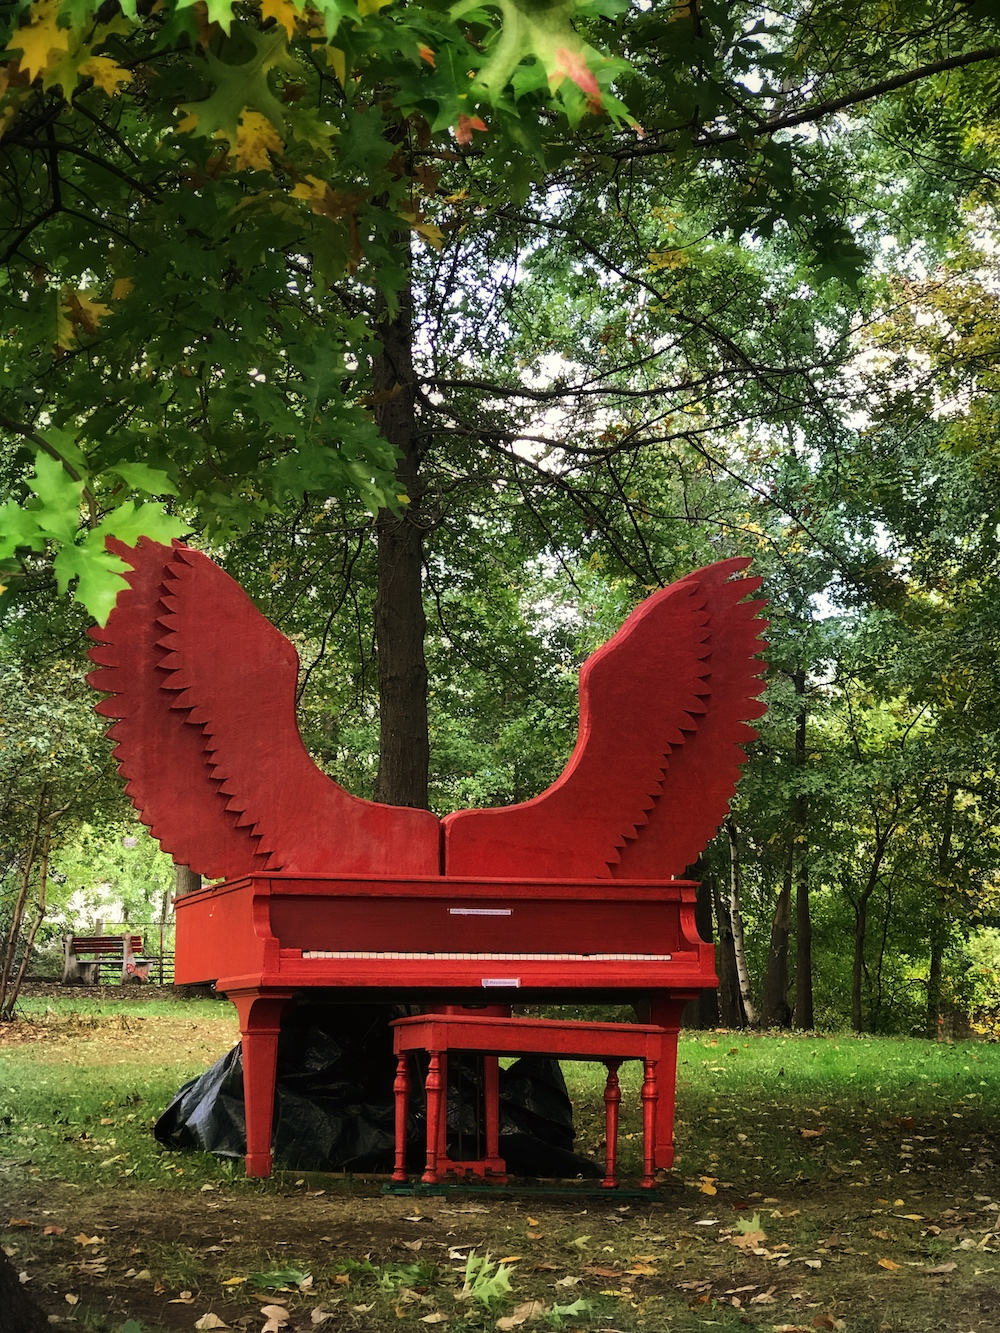 Piano near Beacon Falls, along the Fishkill Creek. Piano created by the artist  Lori Merhige .  Photo Credit: Izdihar Dabashi